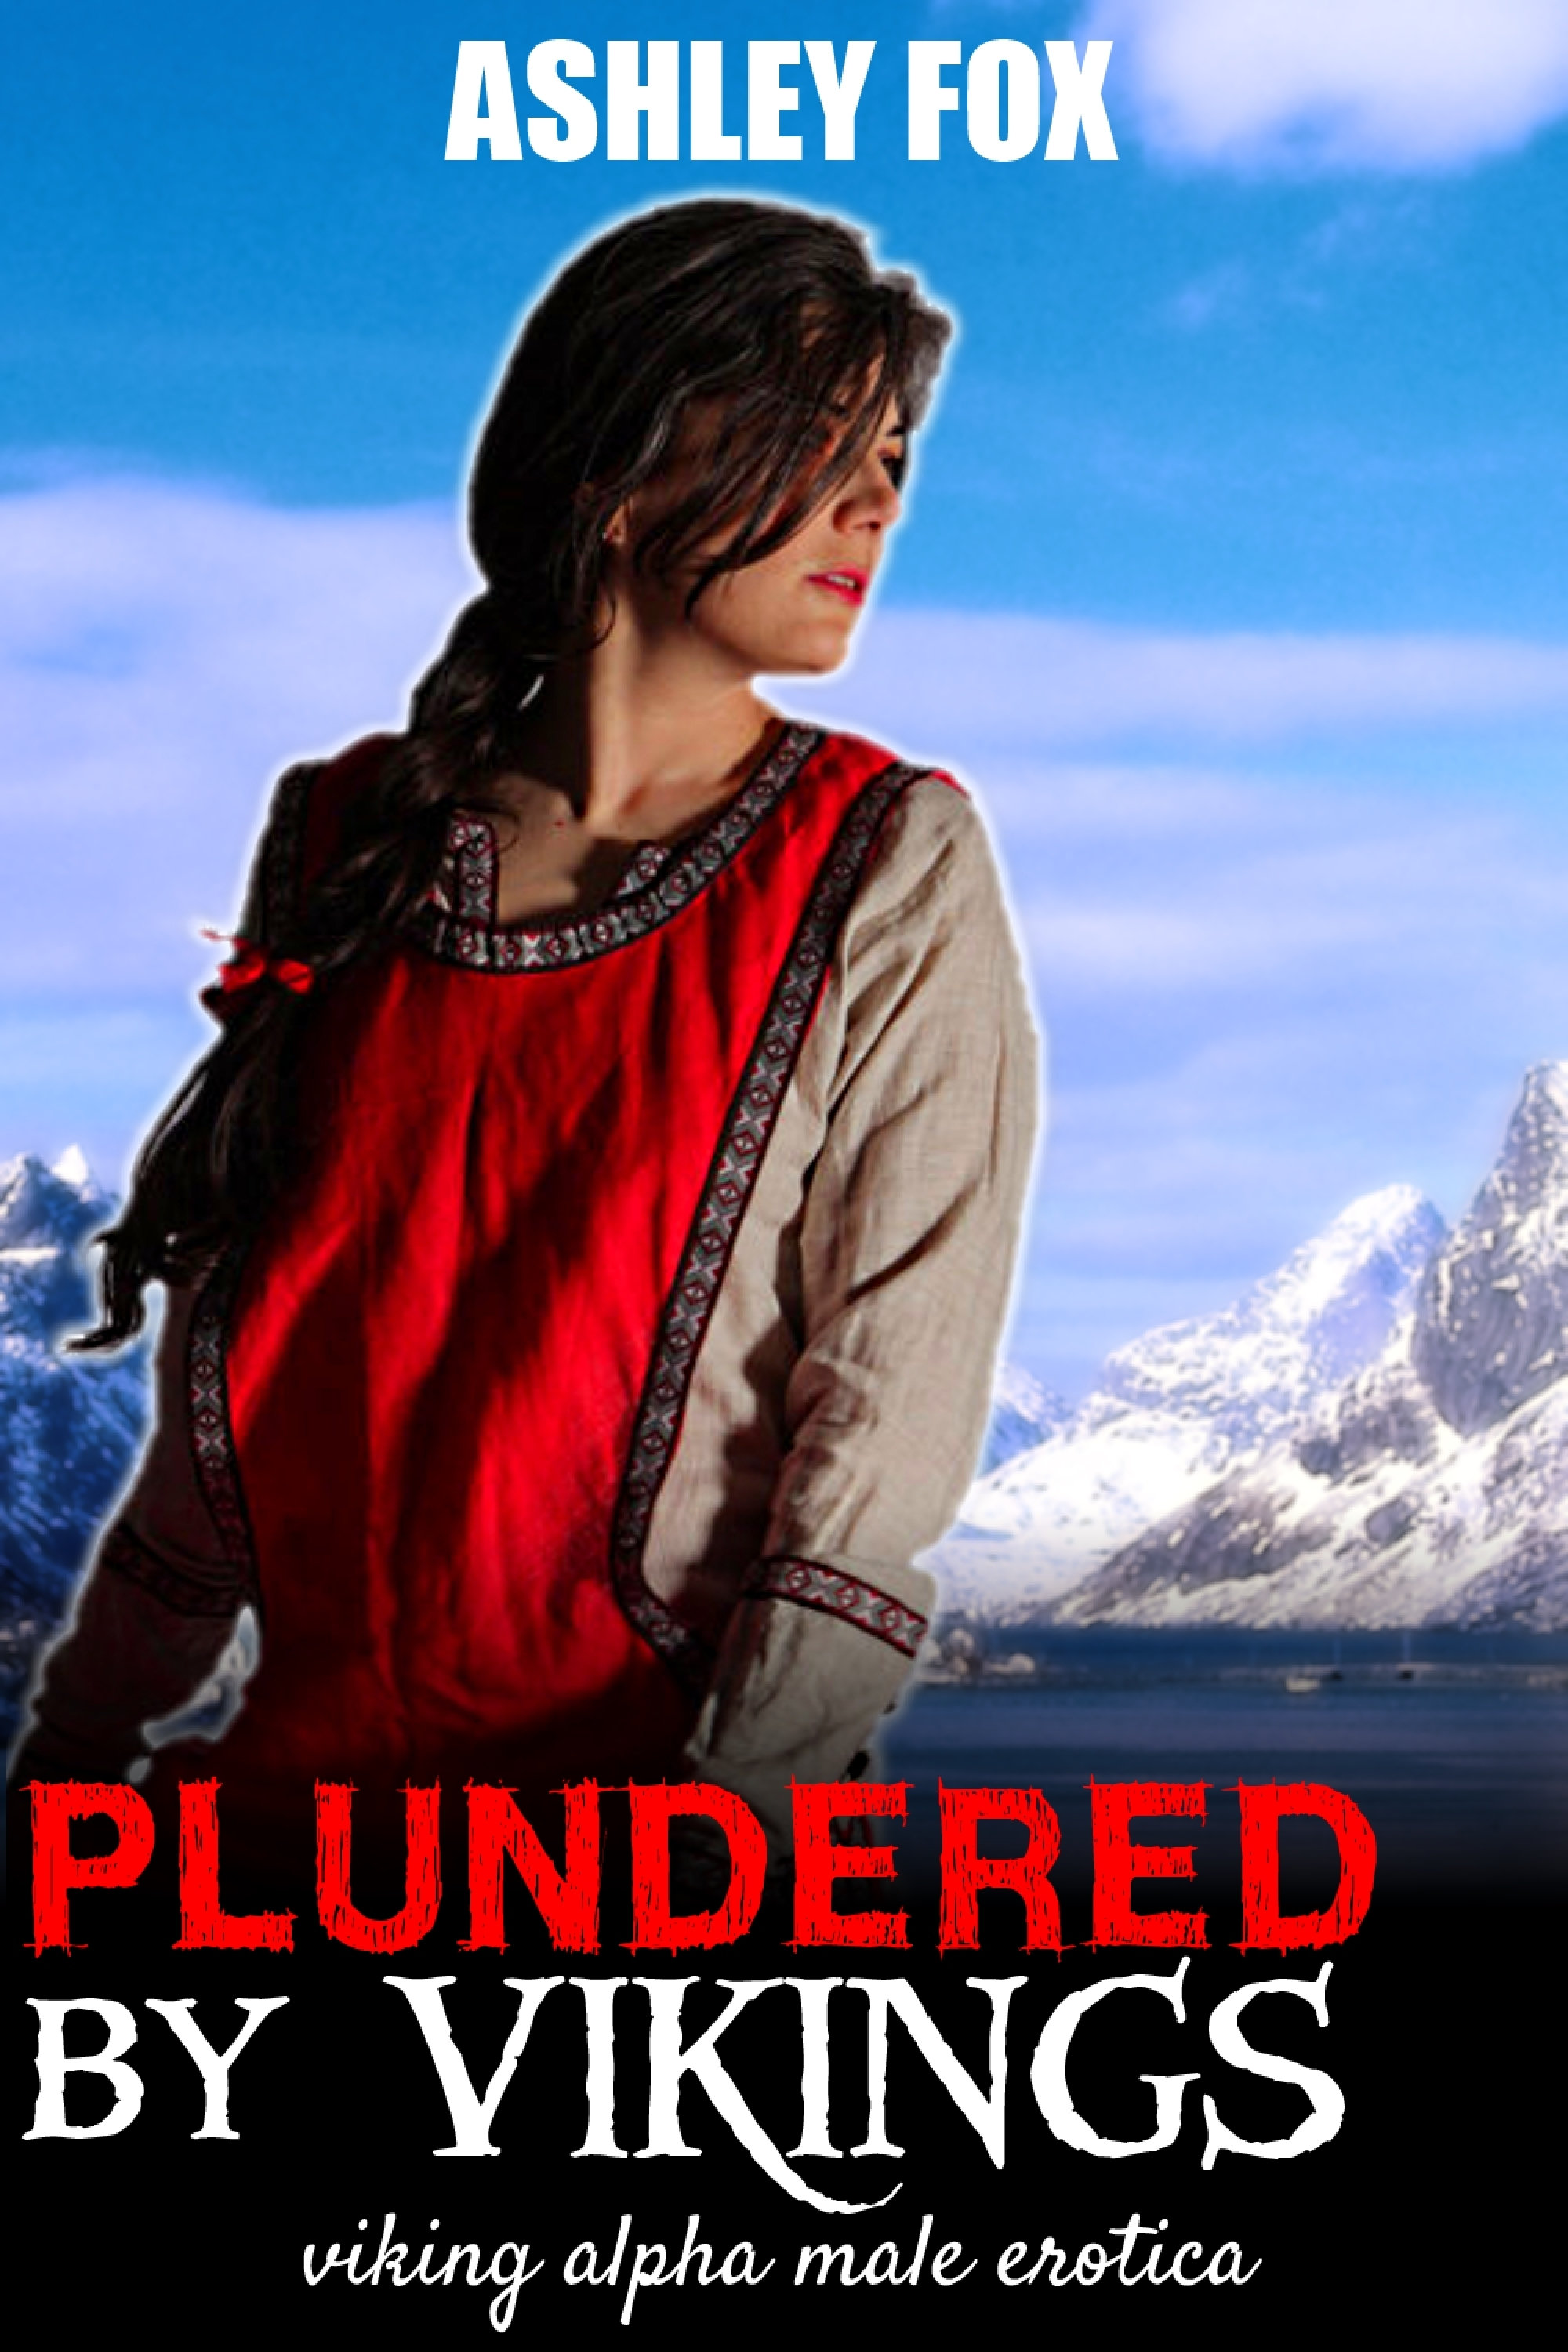 Plundered By Vikings  by  Ashley Fox